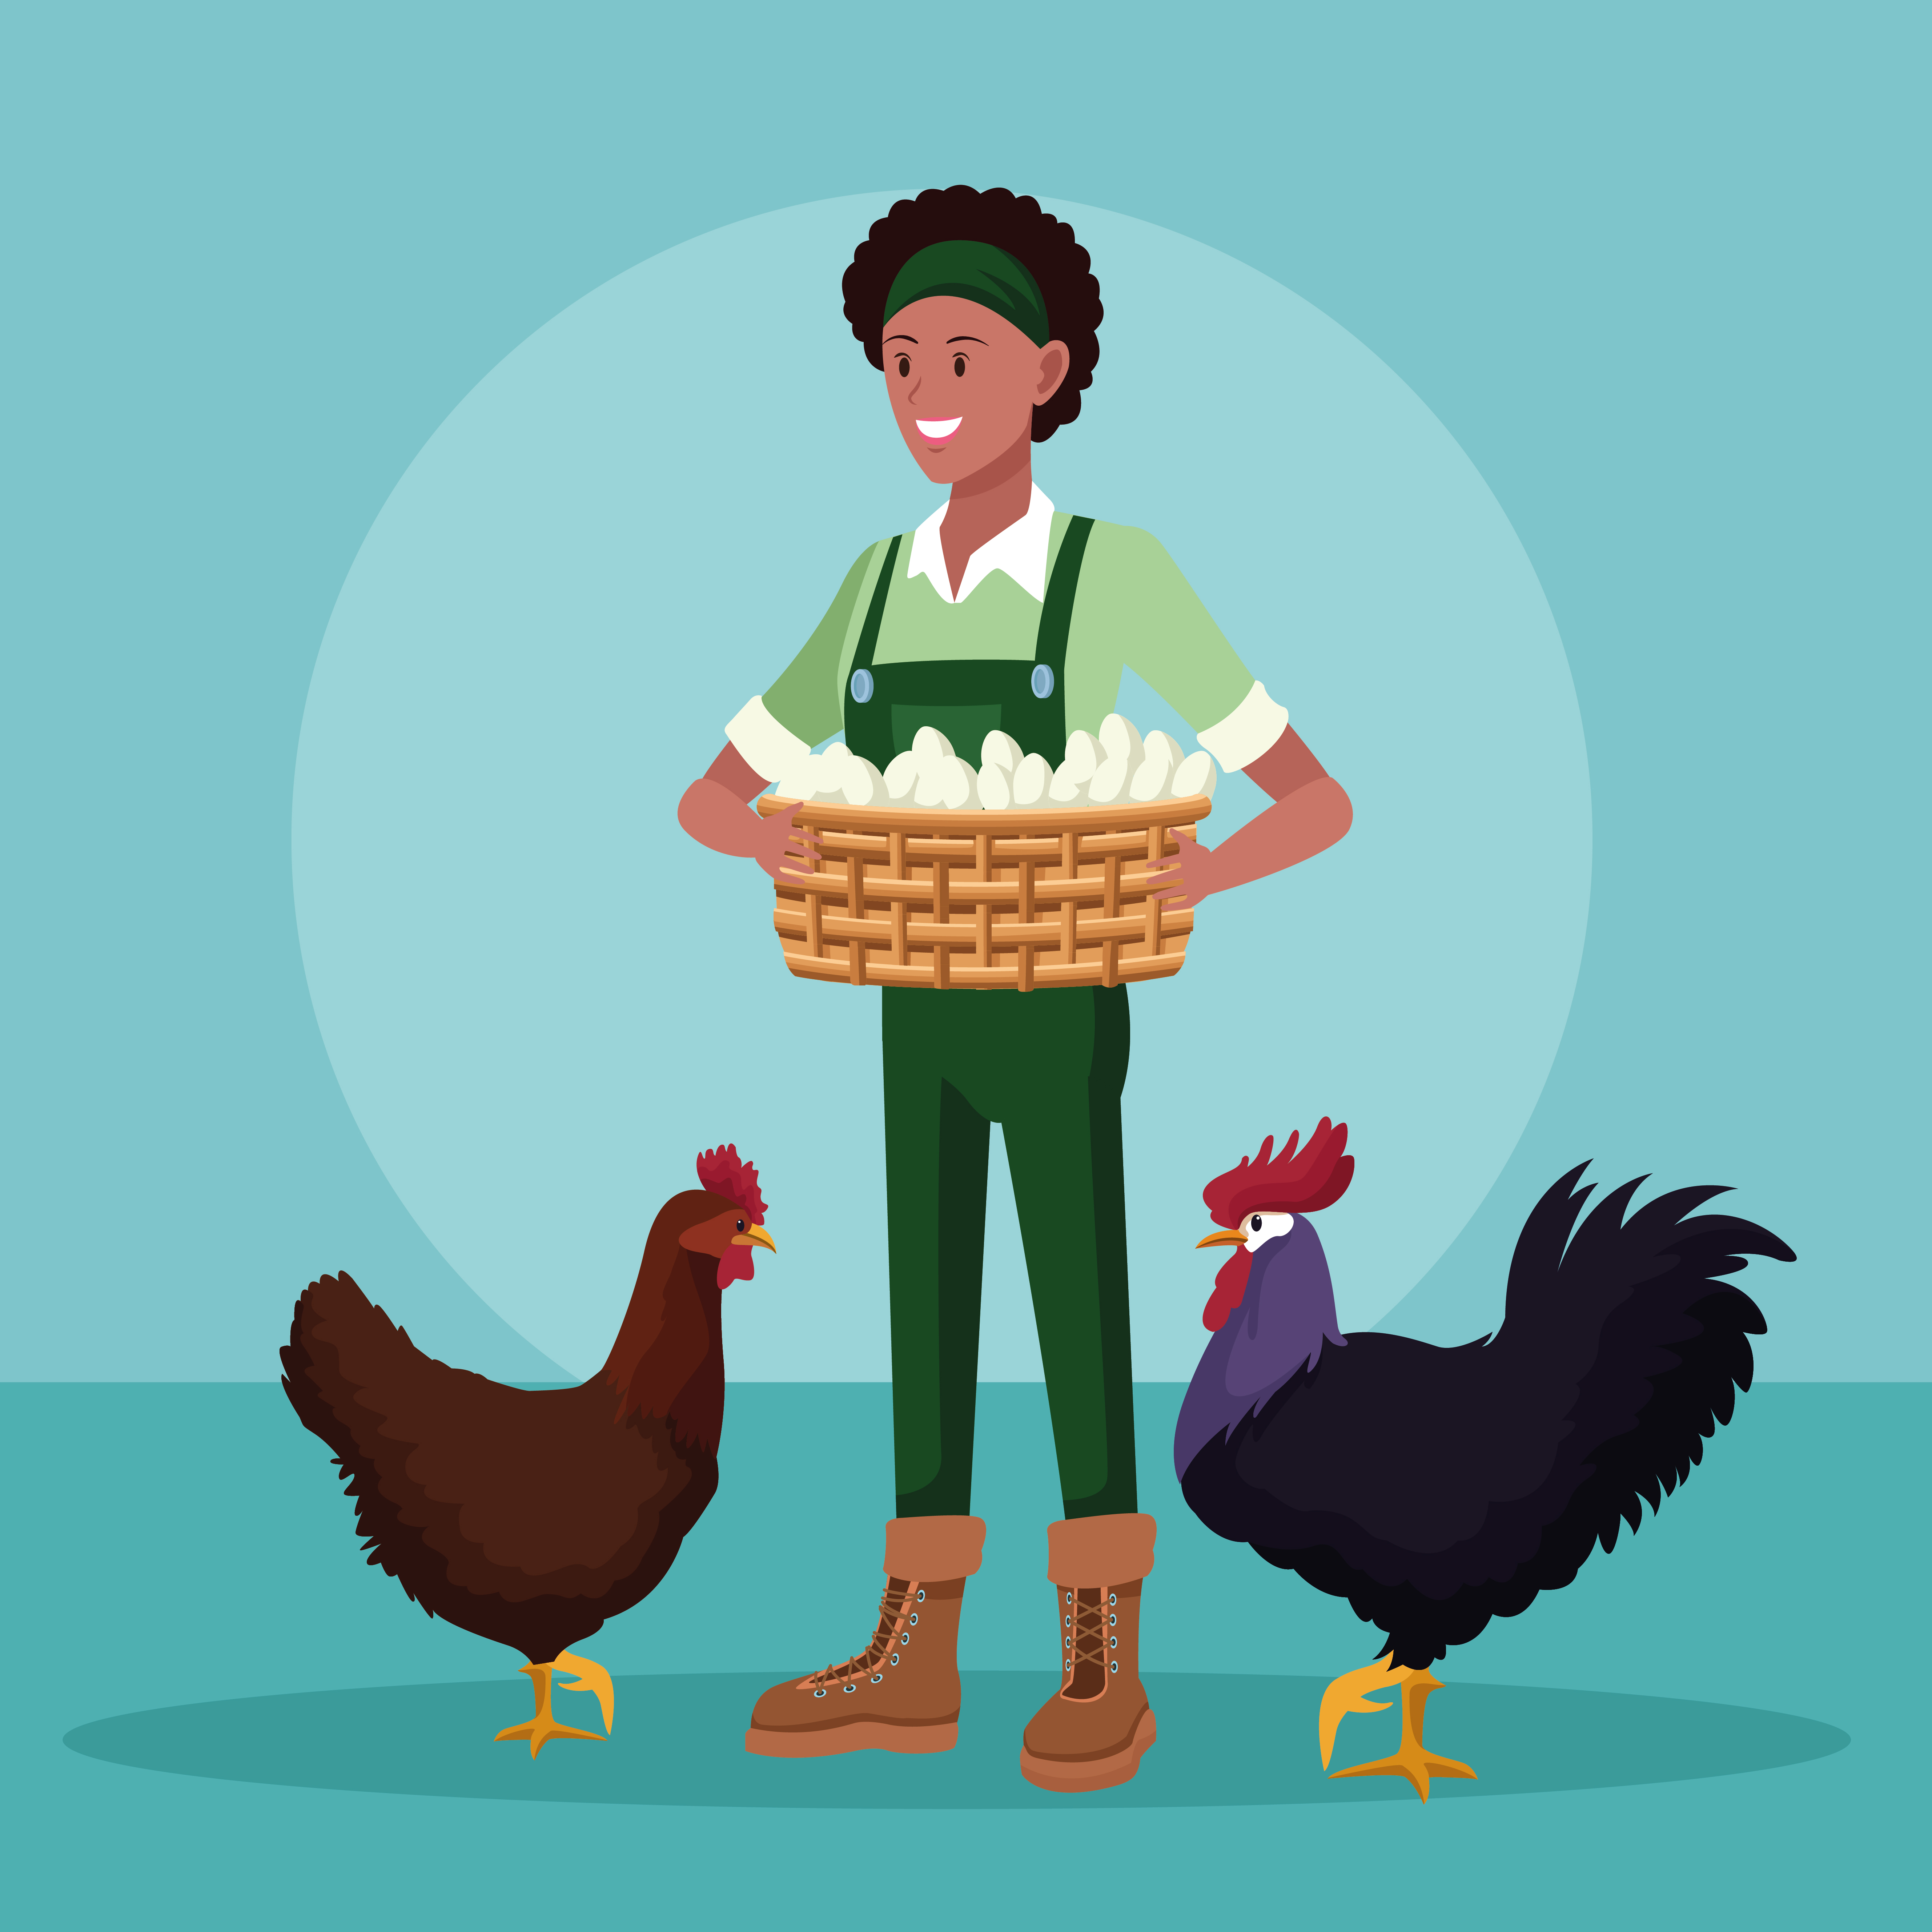 Farmer Woman With Eggs In Basket And Chickens Cartoon Download Free Vectors Clipart Graphics Vector Art